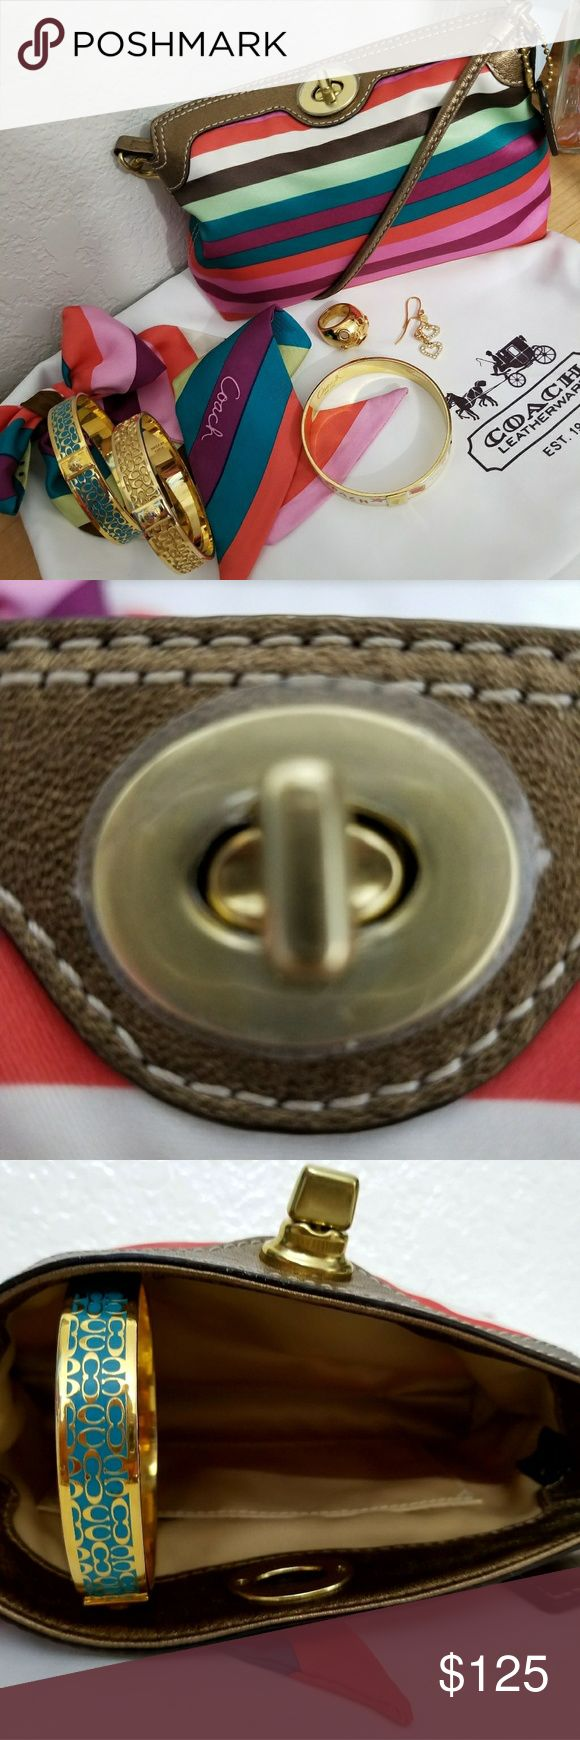 """🔖Vintage HTF Coach Legacy Turn Lock Wristlet Vintage HTF Coach Legacy Turn Lock Wristlet NWOT! Never been used! Use as a Wristlet or a small bag. No tears, rips or odors. Very clean colors are gorgeous! Print is Legacy Scarf Print. Metallic bronze leather trim and strap. Turn Lock and fold down. There is a leather hang tag, metal tag. Inside is sateen. 5"""" H, 7"""" L, 2.5 D. Perfect to fit your necessities for a night out! Coach Bags Clutches & Wristlets"""